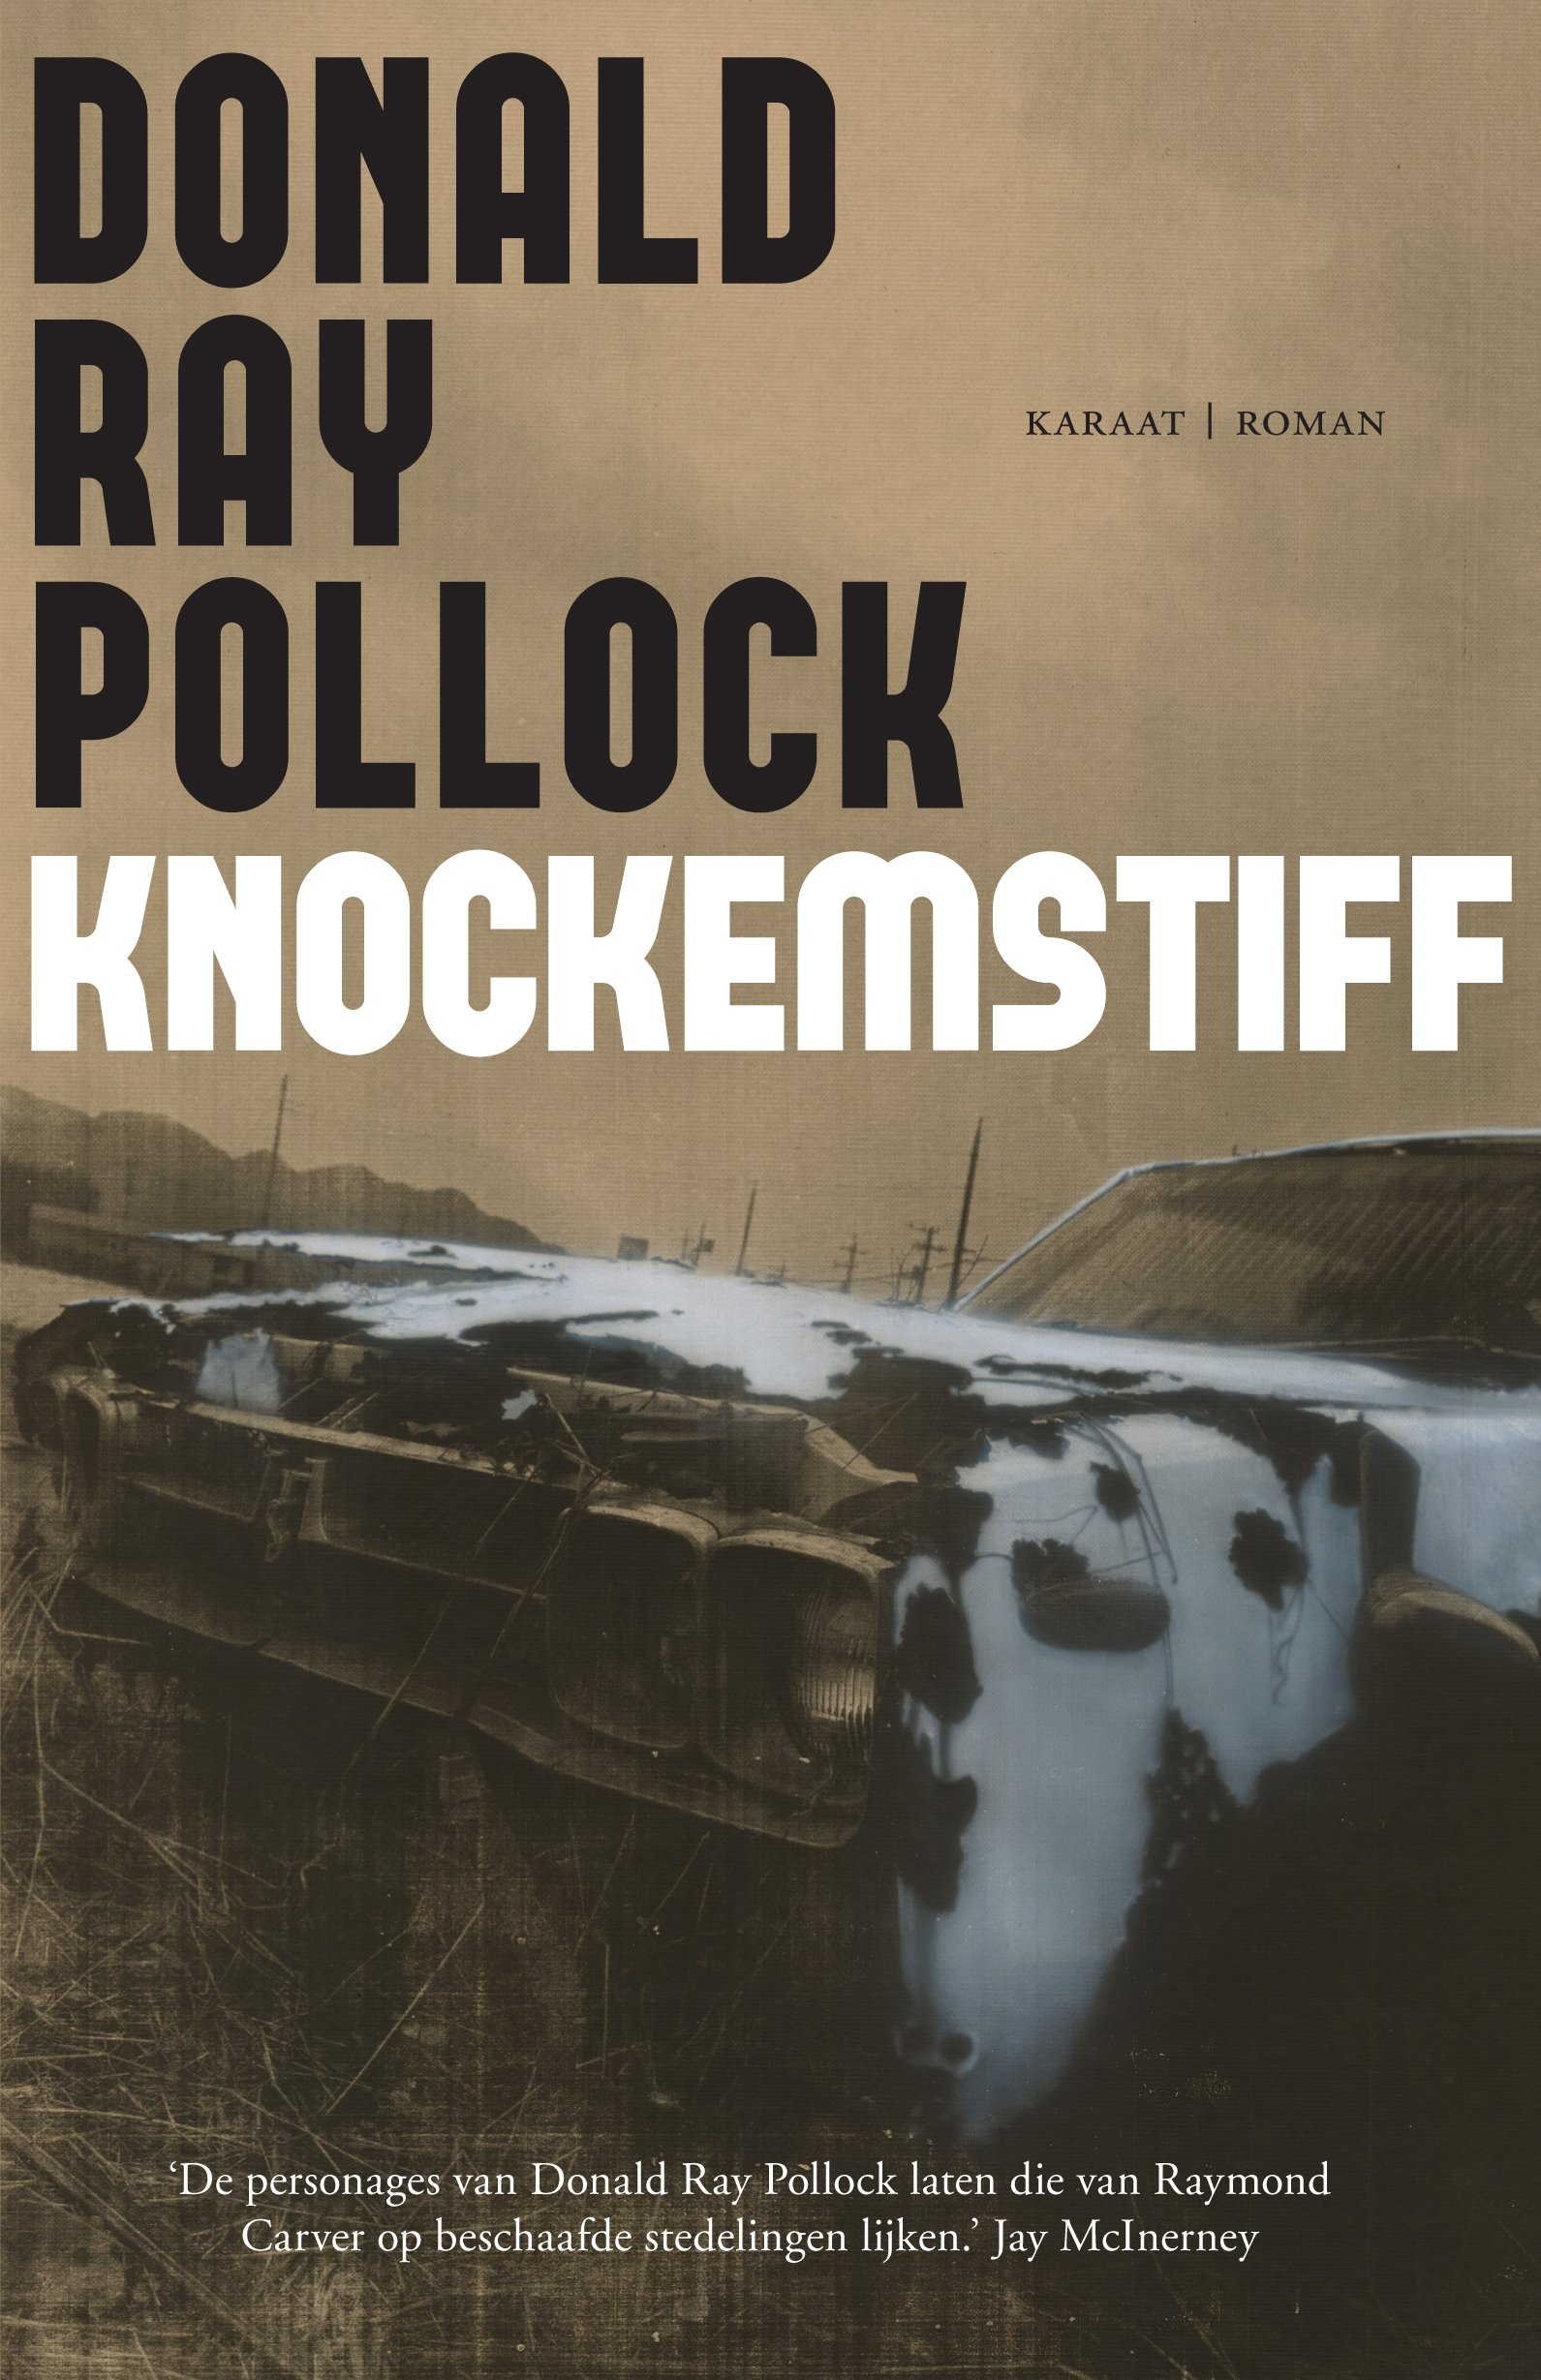 Omslag Knockemstiff  -  Donald Ray Pollock